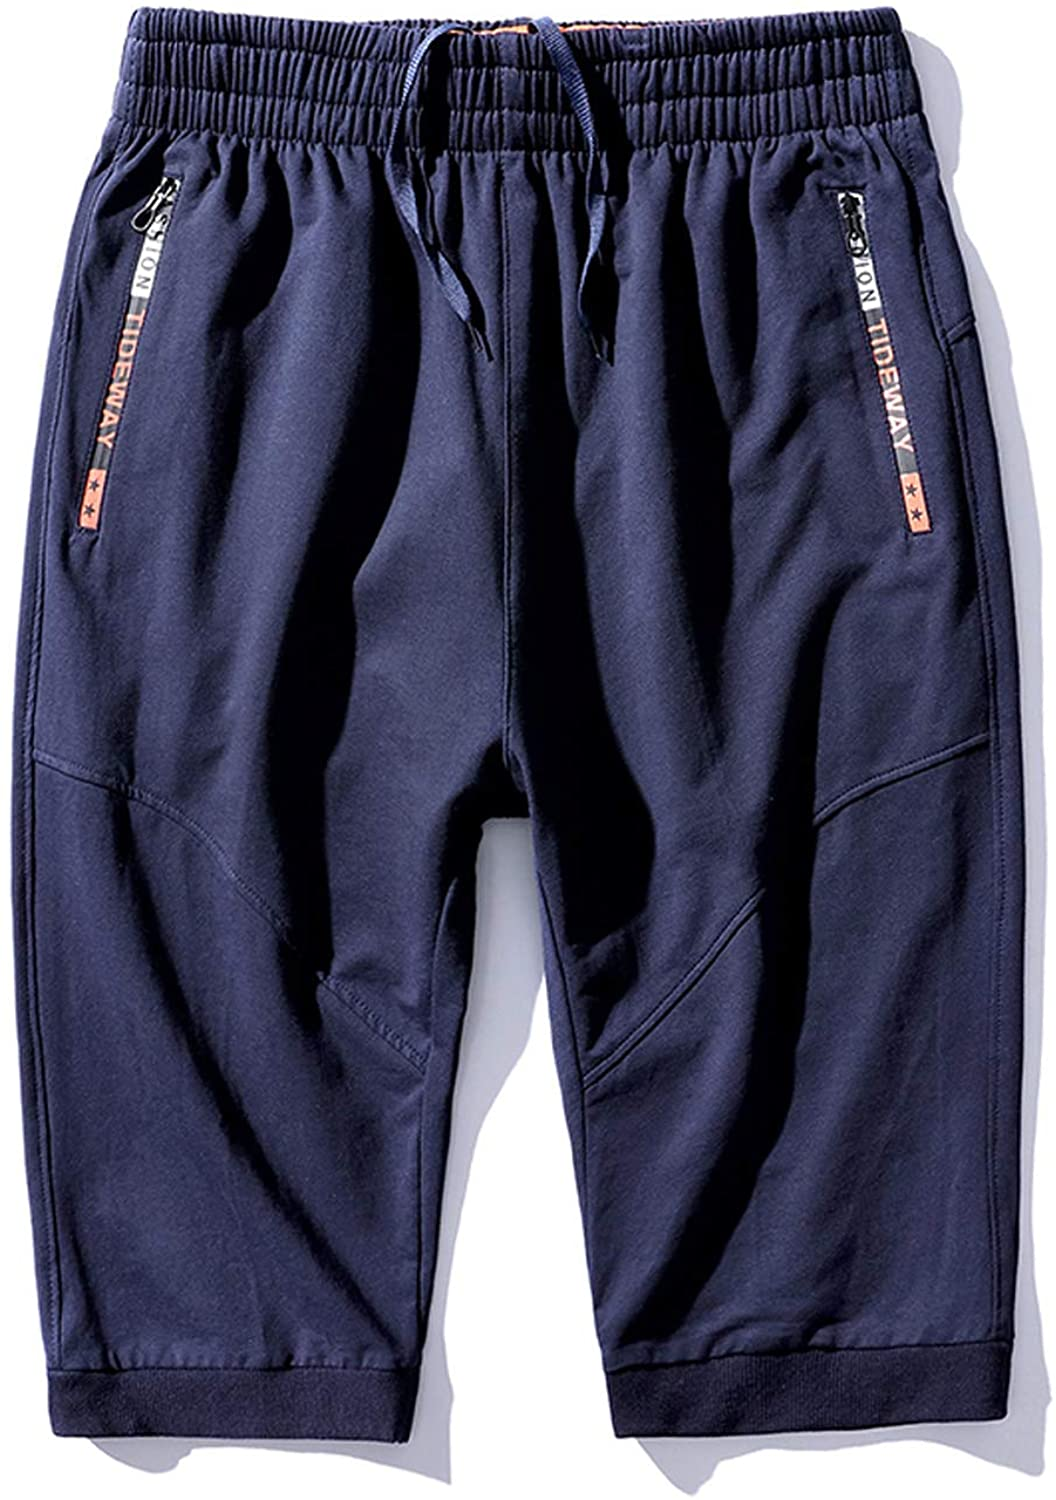 Mr.Stream Men's Plus Size Casual Big and Tall Capri 3/4 Cropped Sports Cotton Basketball Shorts Blue